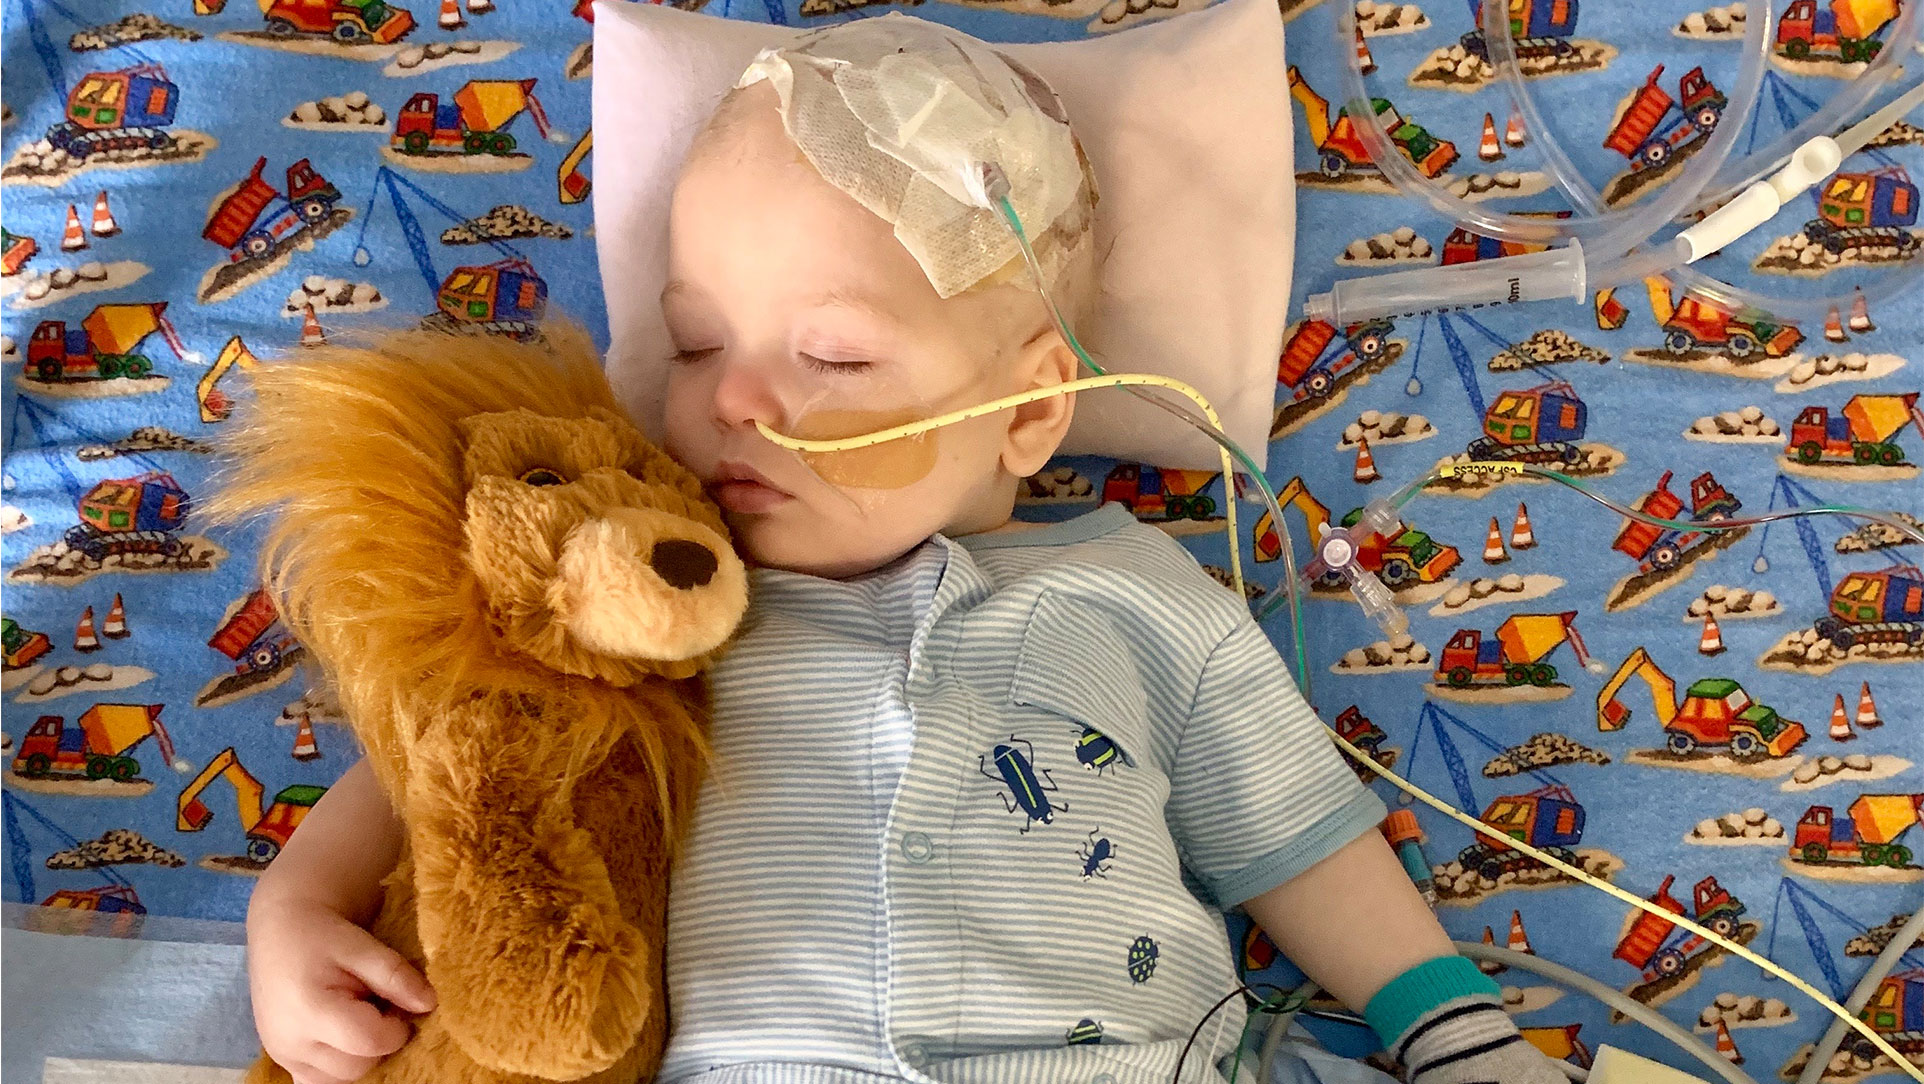 Rory holds his stuffed lion toy as he sleeps. He is wearing a blue striped shirt and has tubes in his nose and taped to his head.